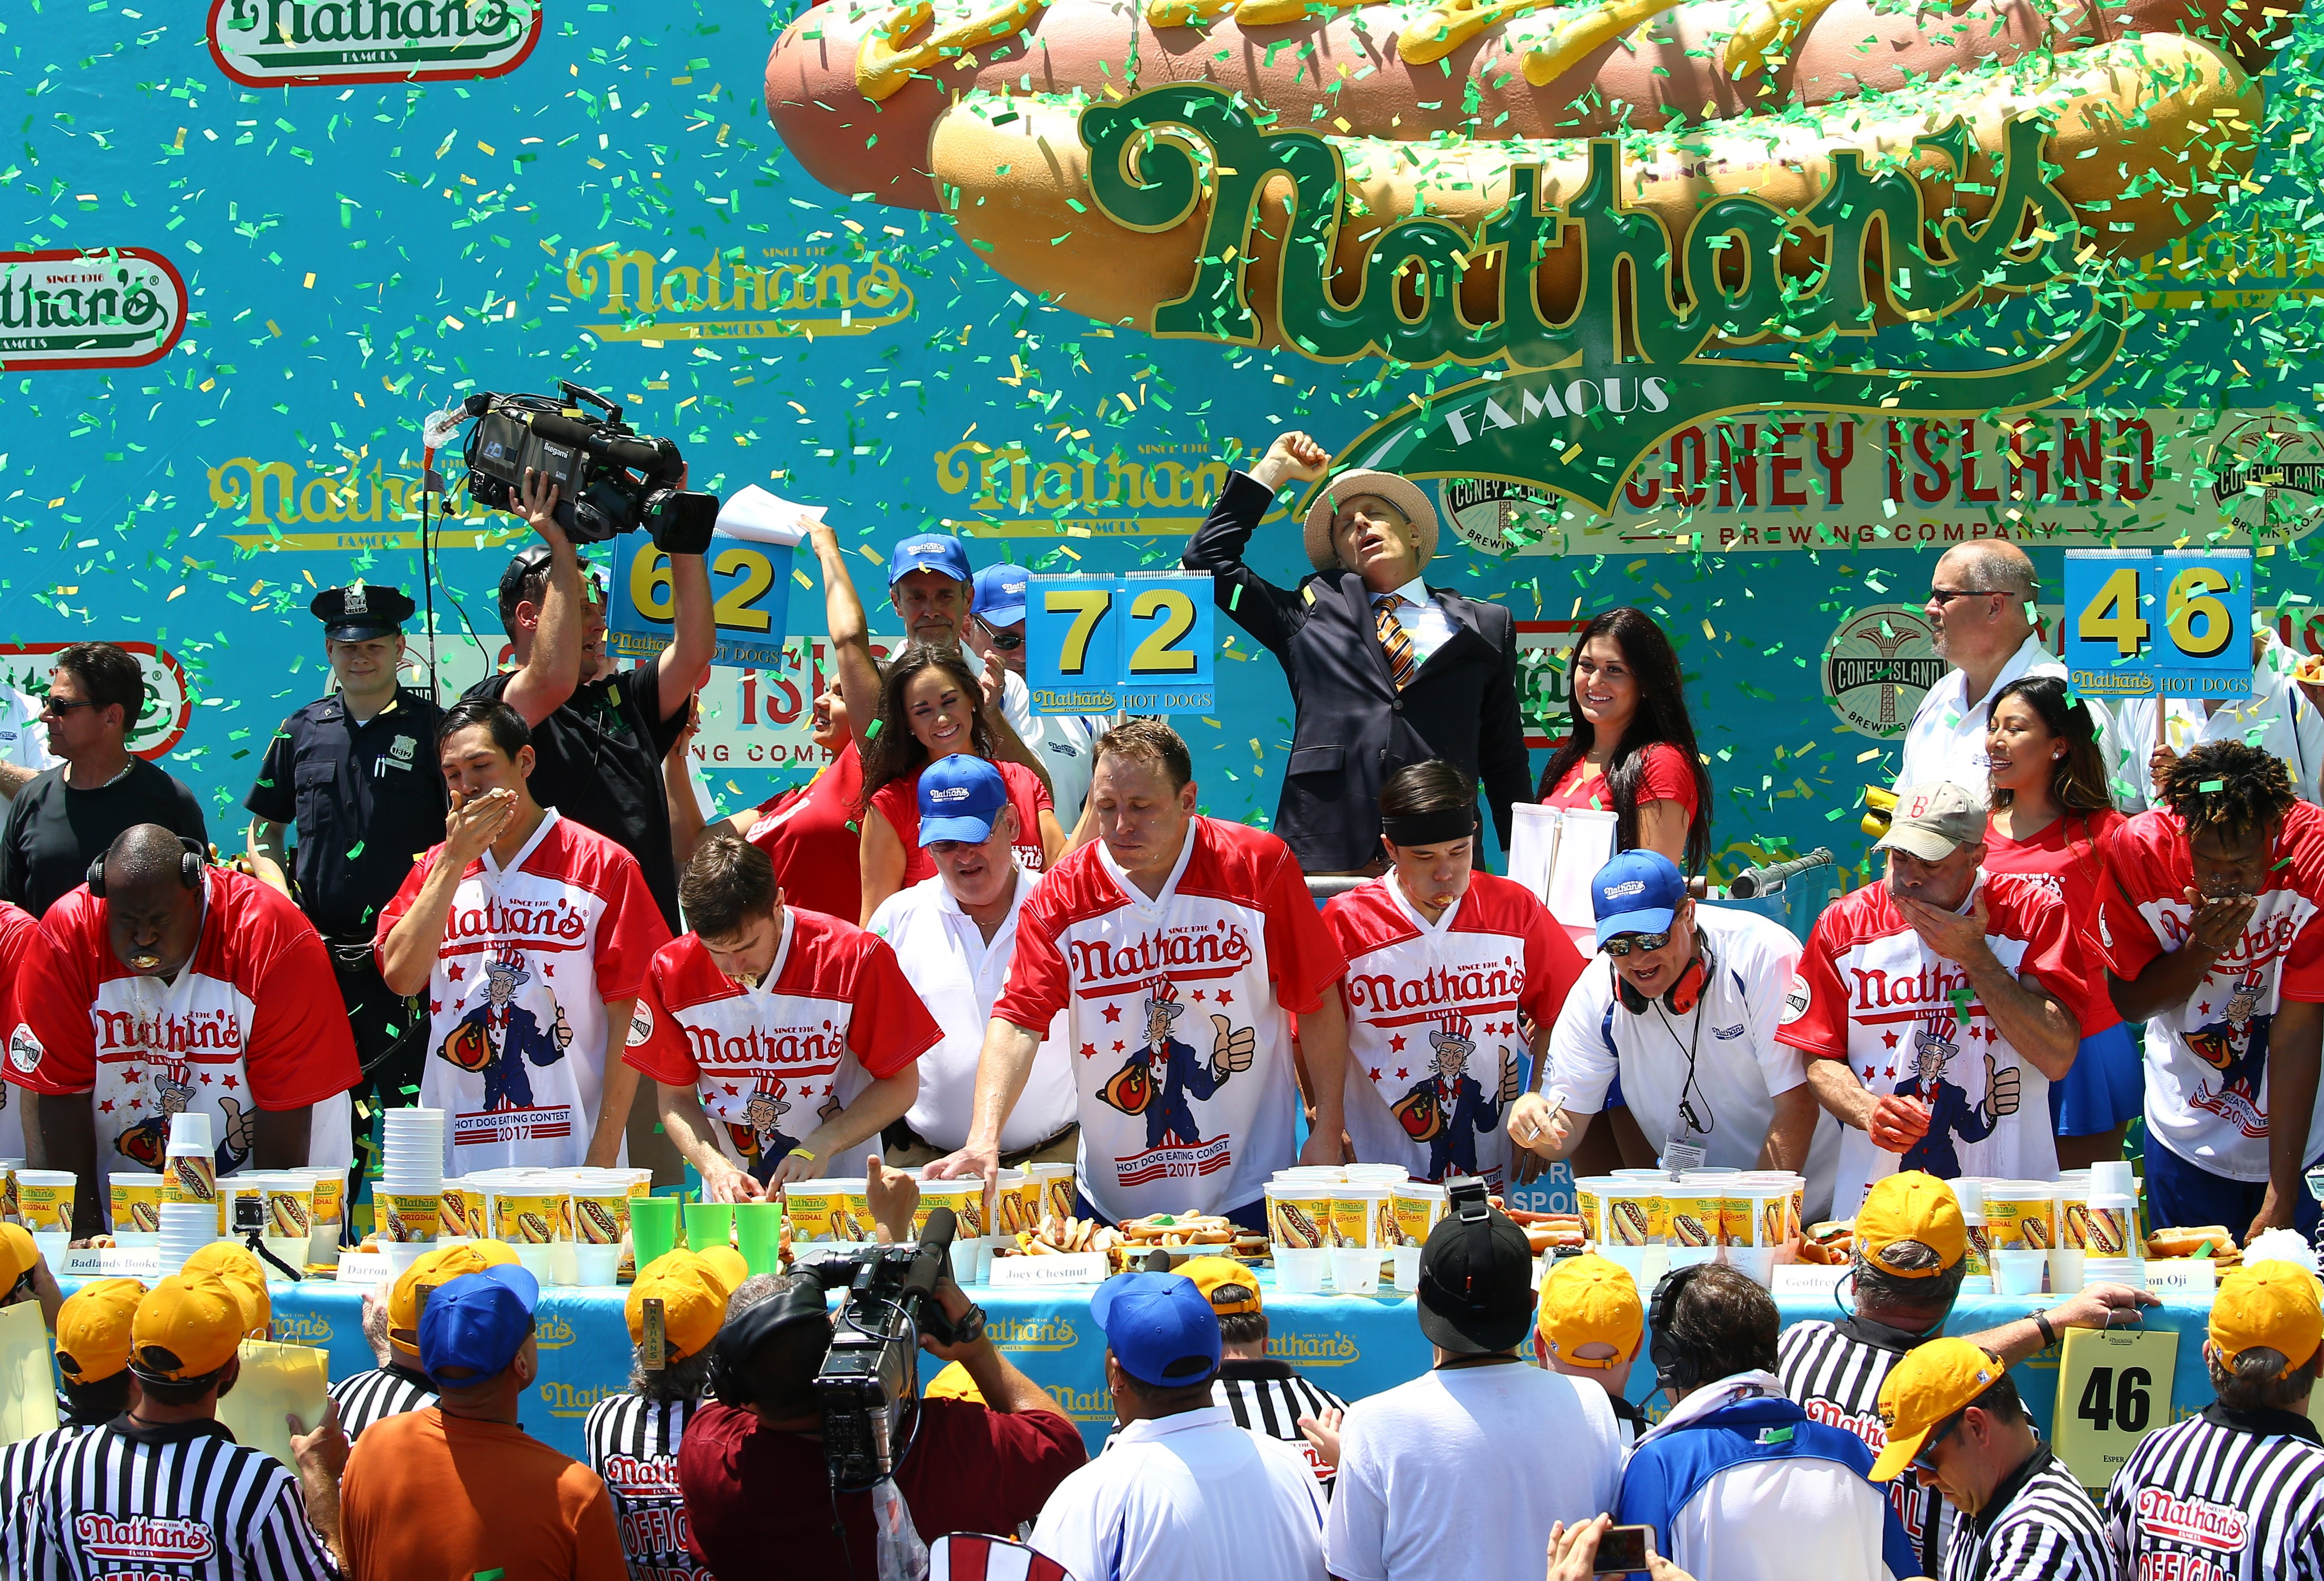 Joey Chestnut (center) wins the men's division of the 2017 Nathan's Famous International Hot Dog Eating Contest at Coney Island, eating 72 hot dogs.